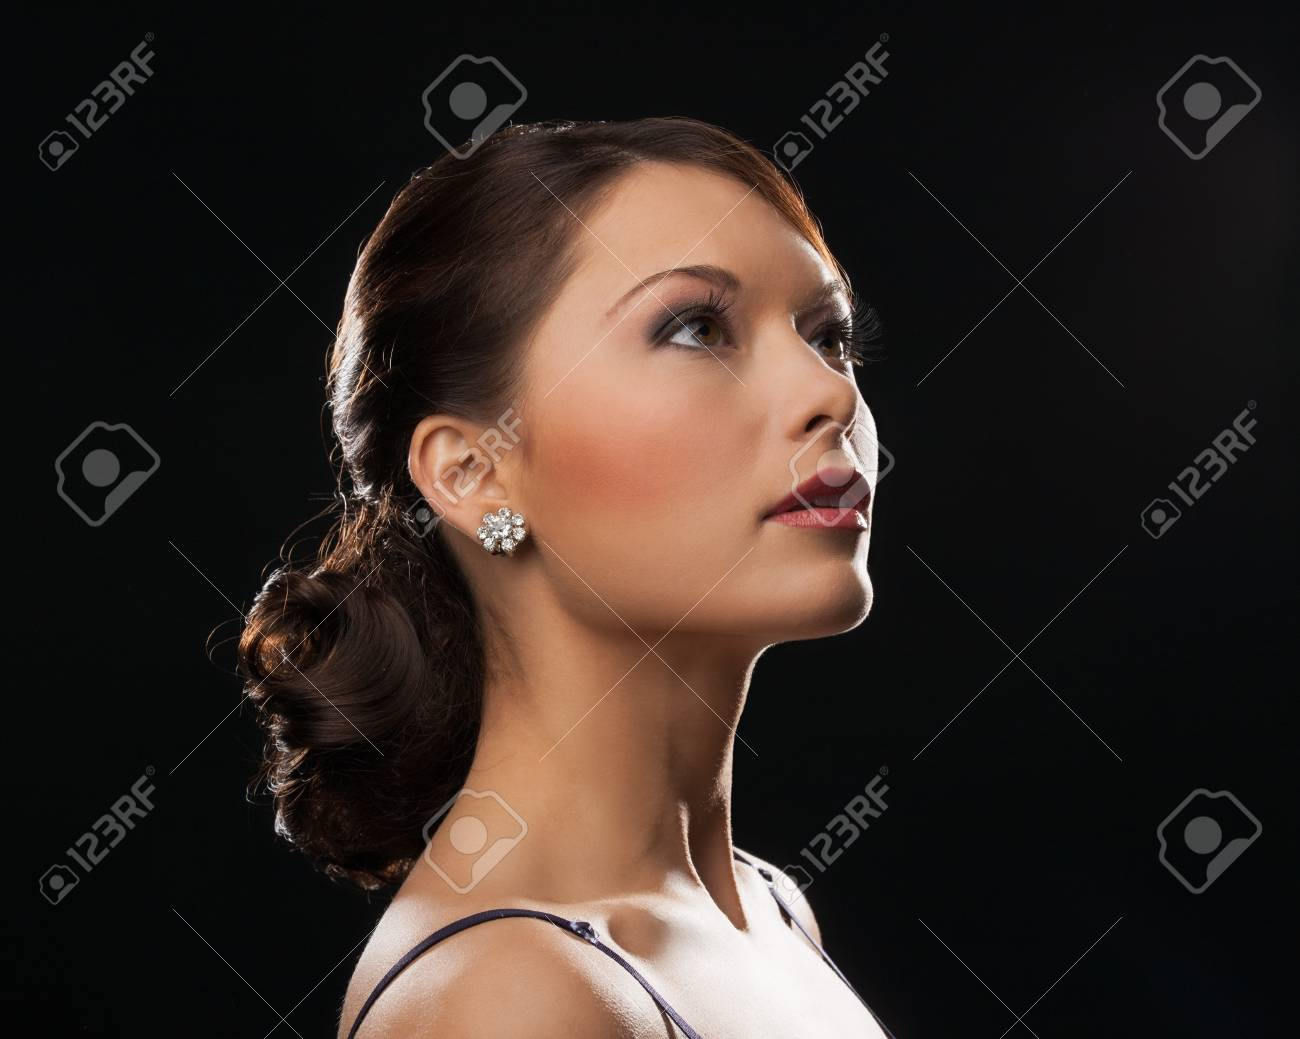 beautiful woman in evening dress wearing diamond earrings Stock Photo - 19563075